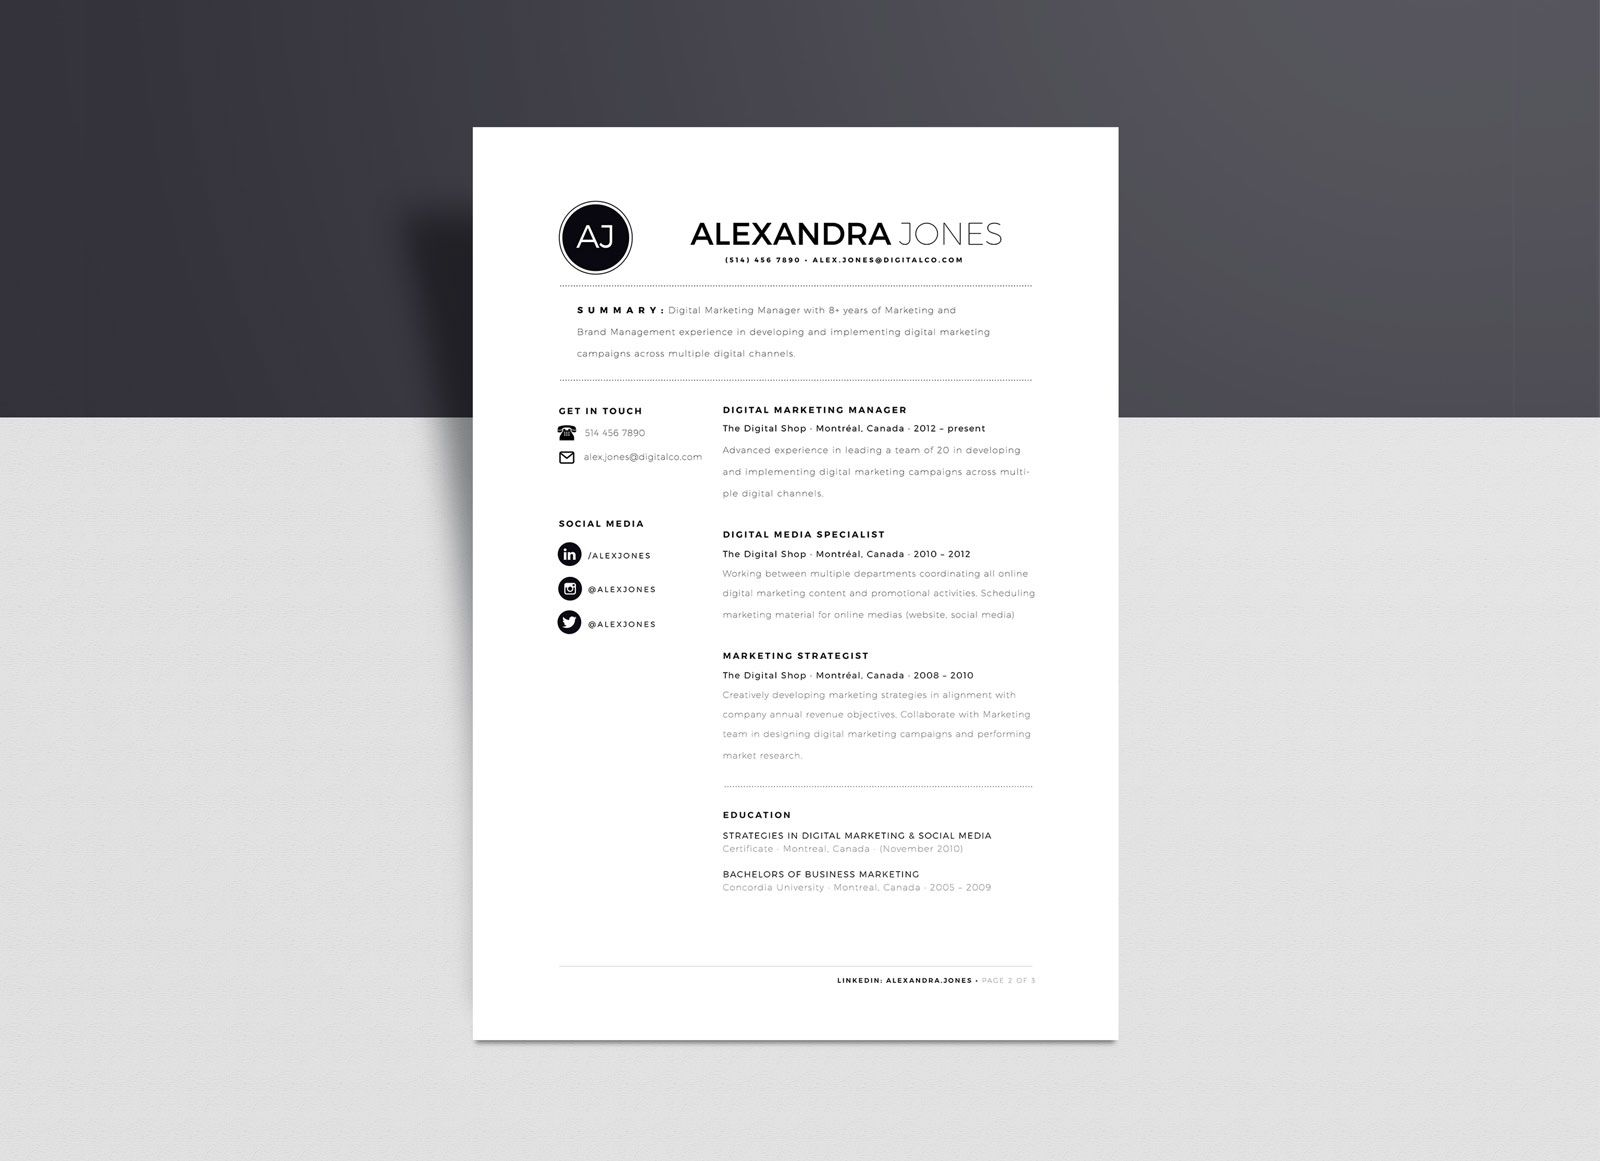 003 Stunning Resume Template Free Word Highest Clarity  Download 2020 CvFull